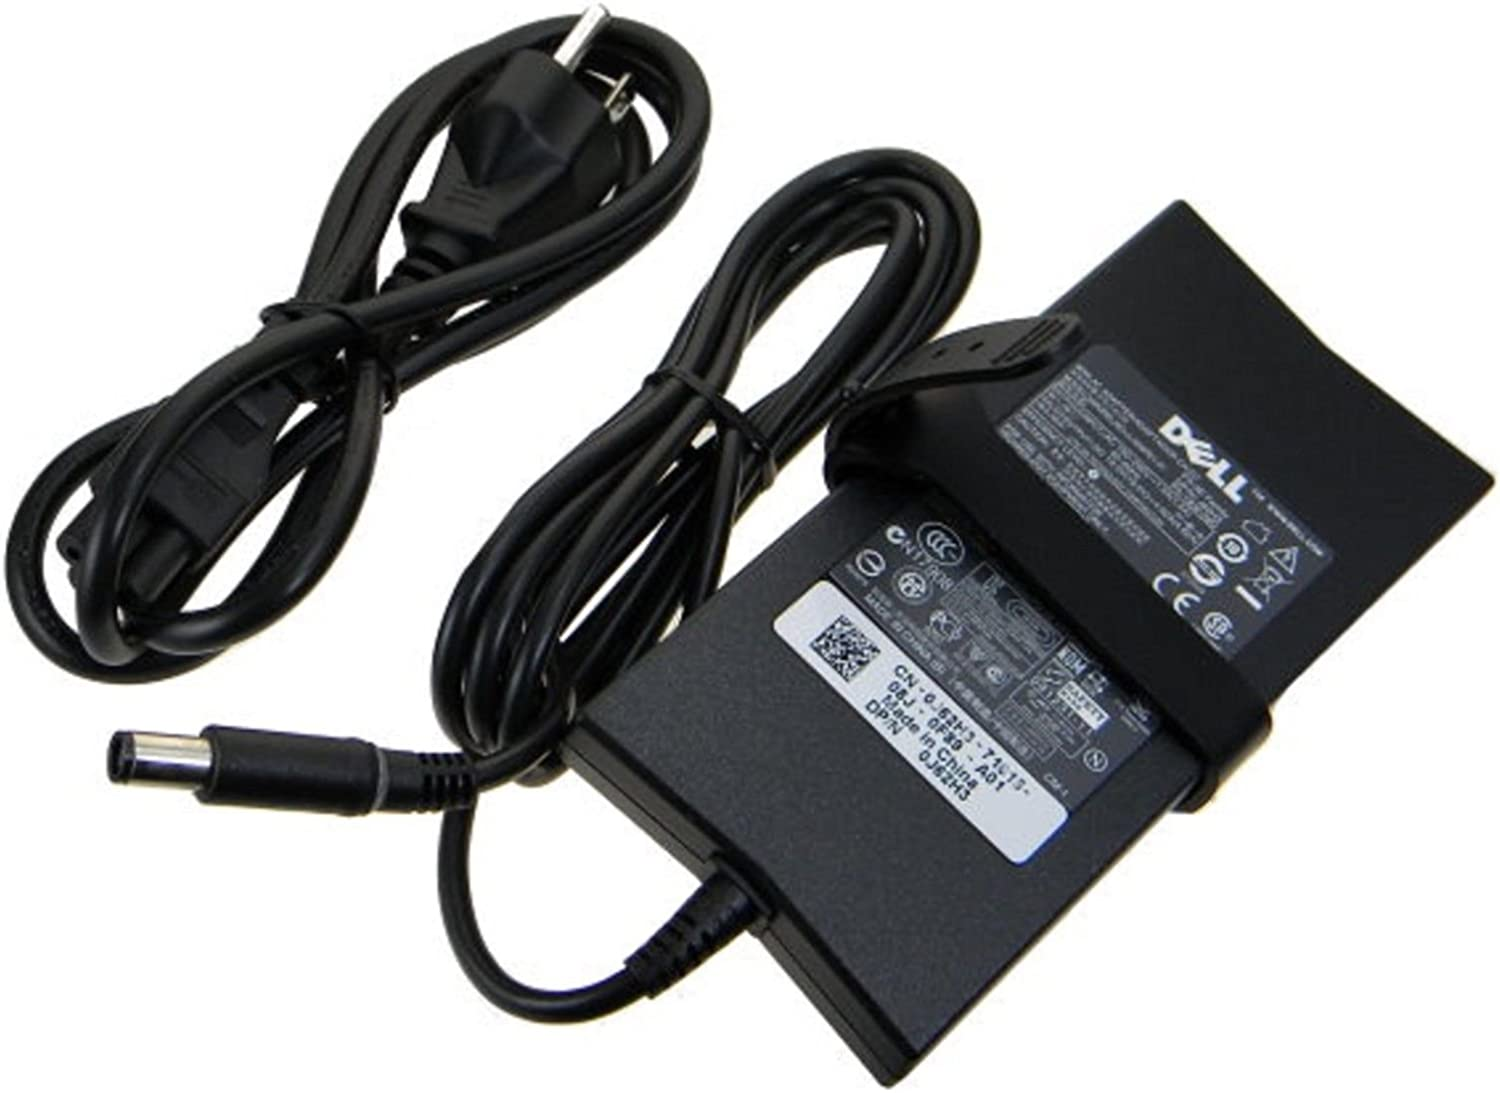 Genuine Dell Laptop Charger AC Adapter Power Supply AA90PM111 0MV2MM 19.5V 90W